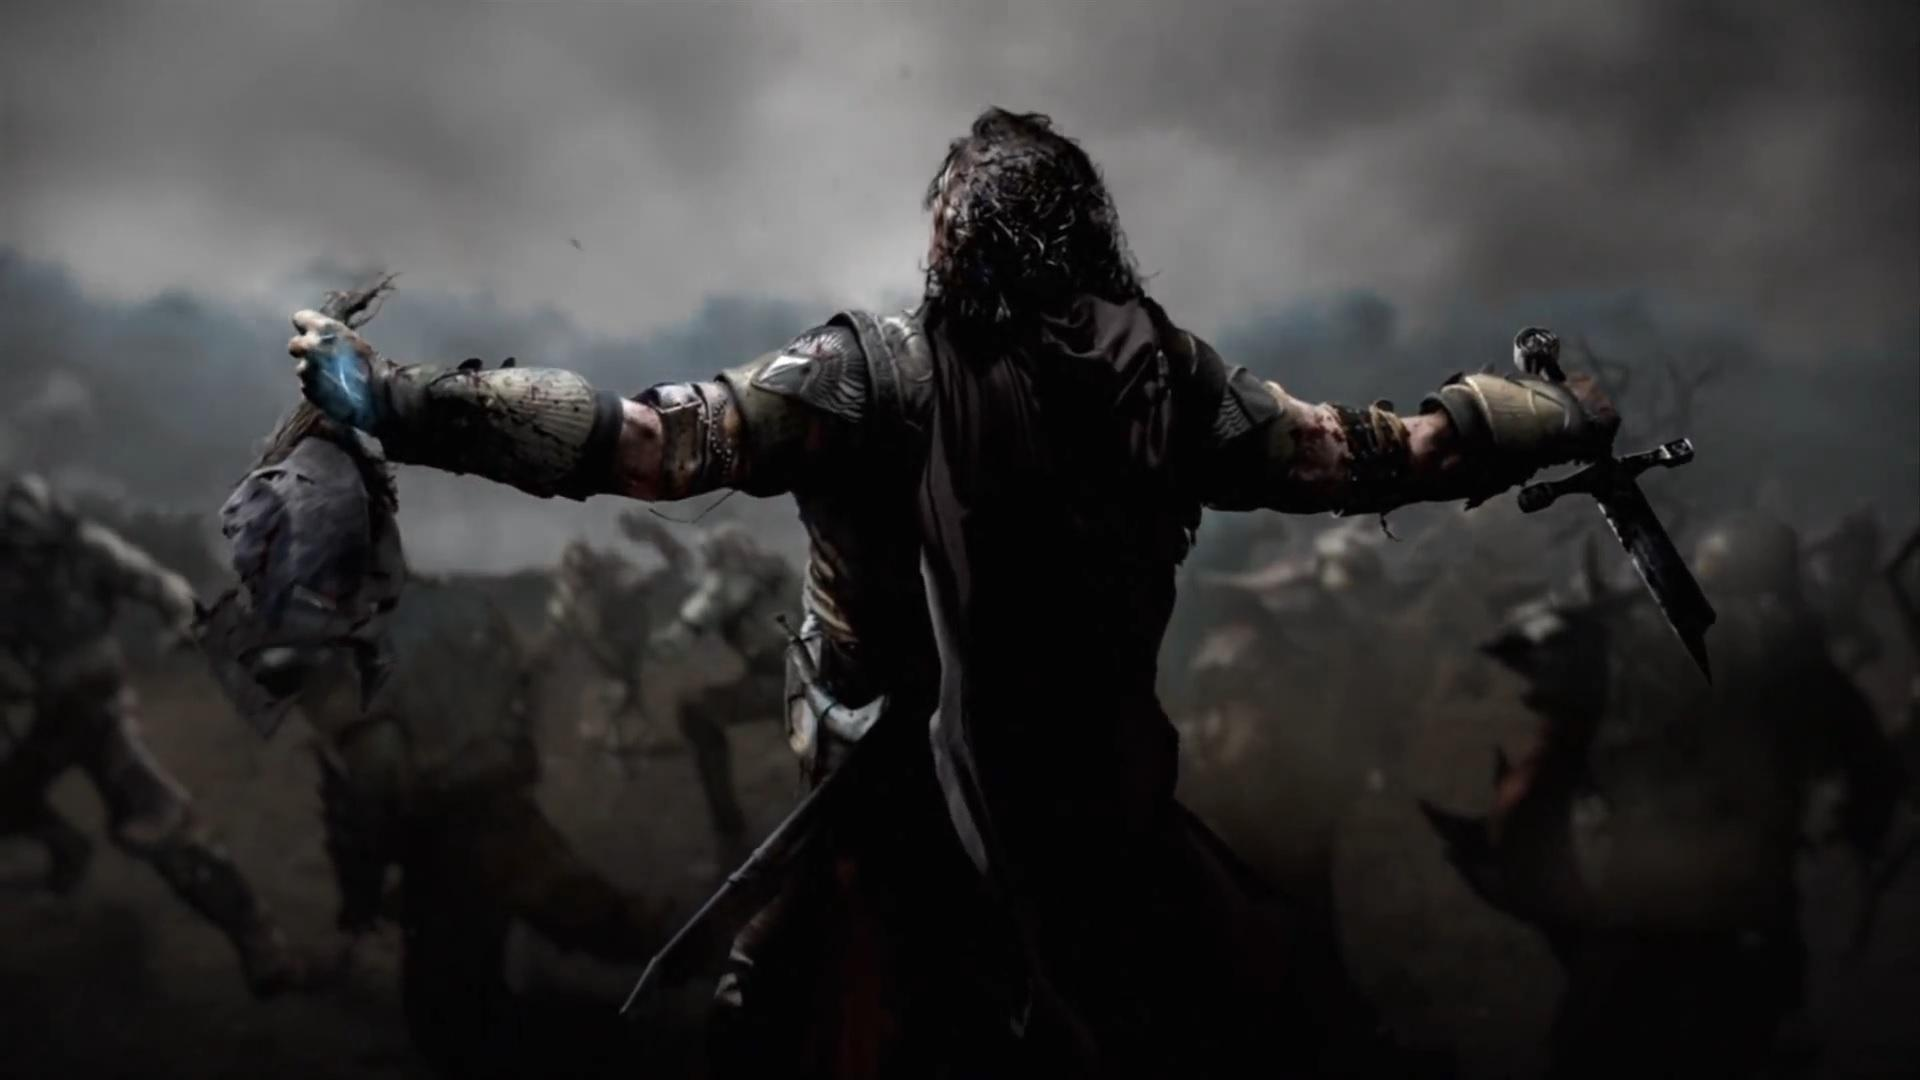 Shadow Of Mordor Wallpaper: Shadow Of Mordor Wallpapers High Quality